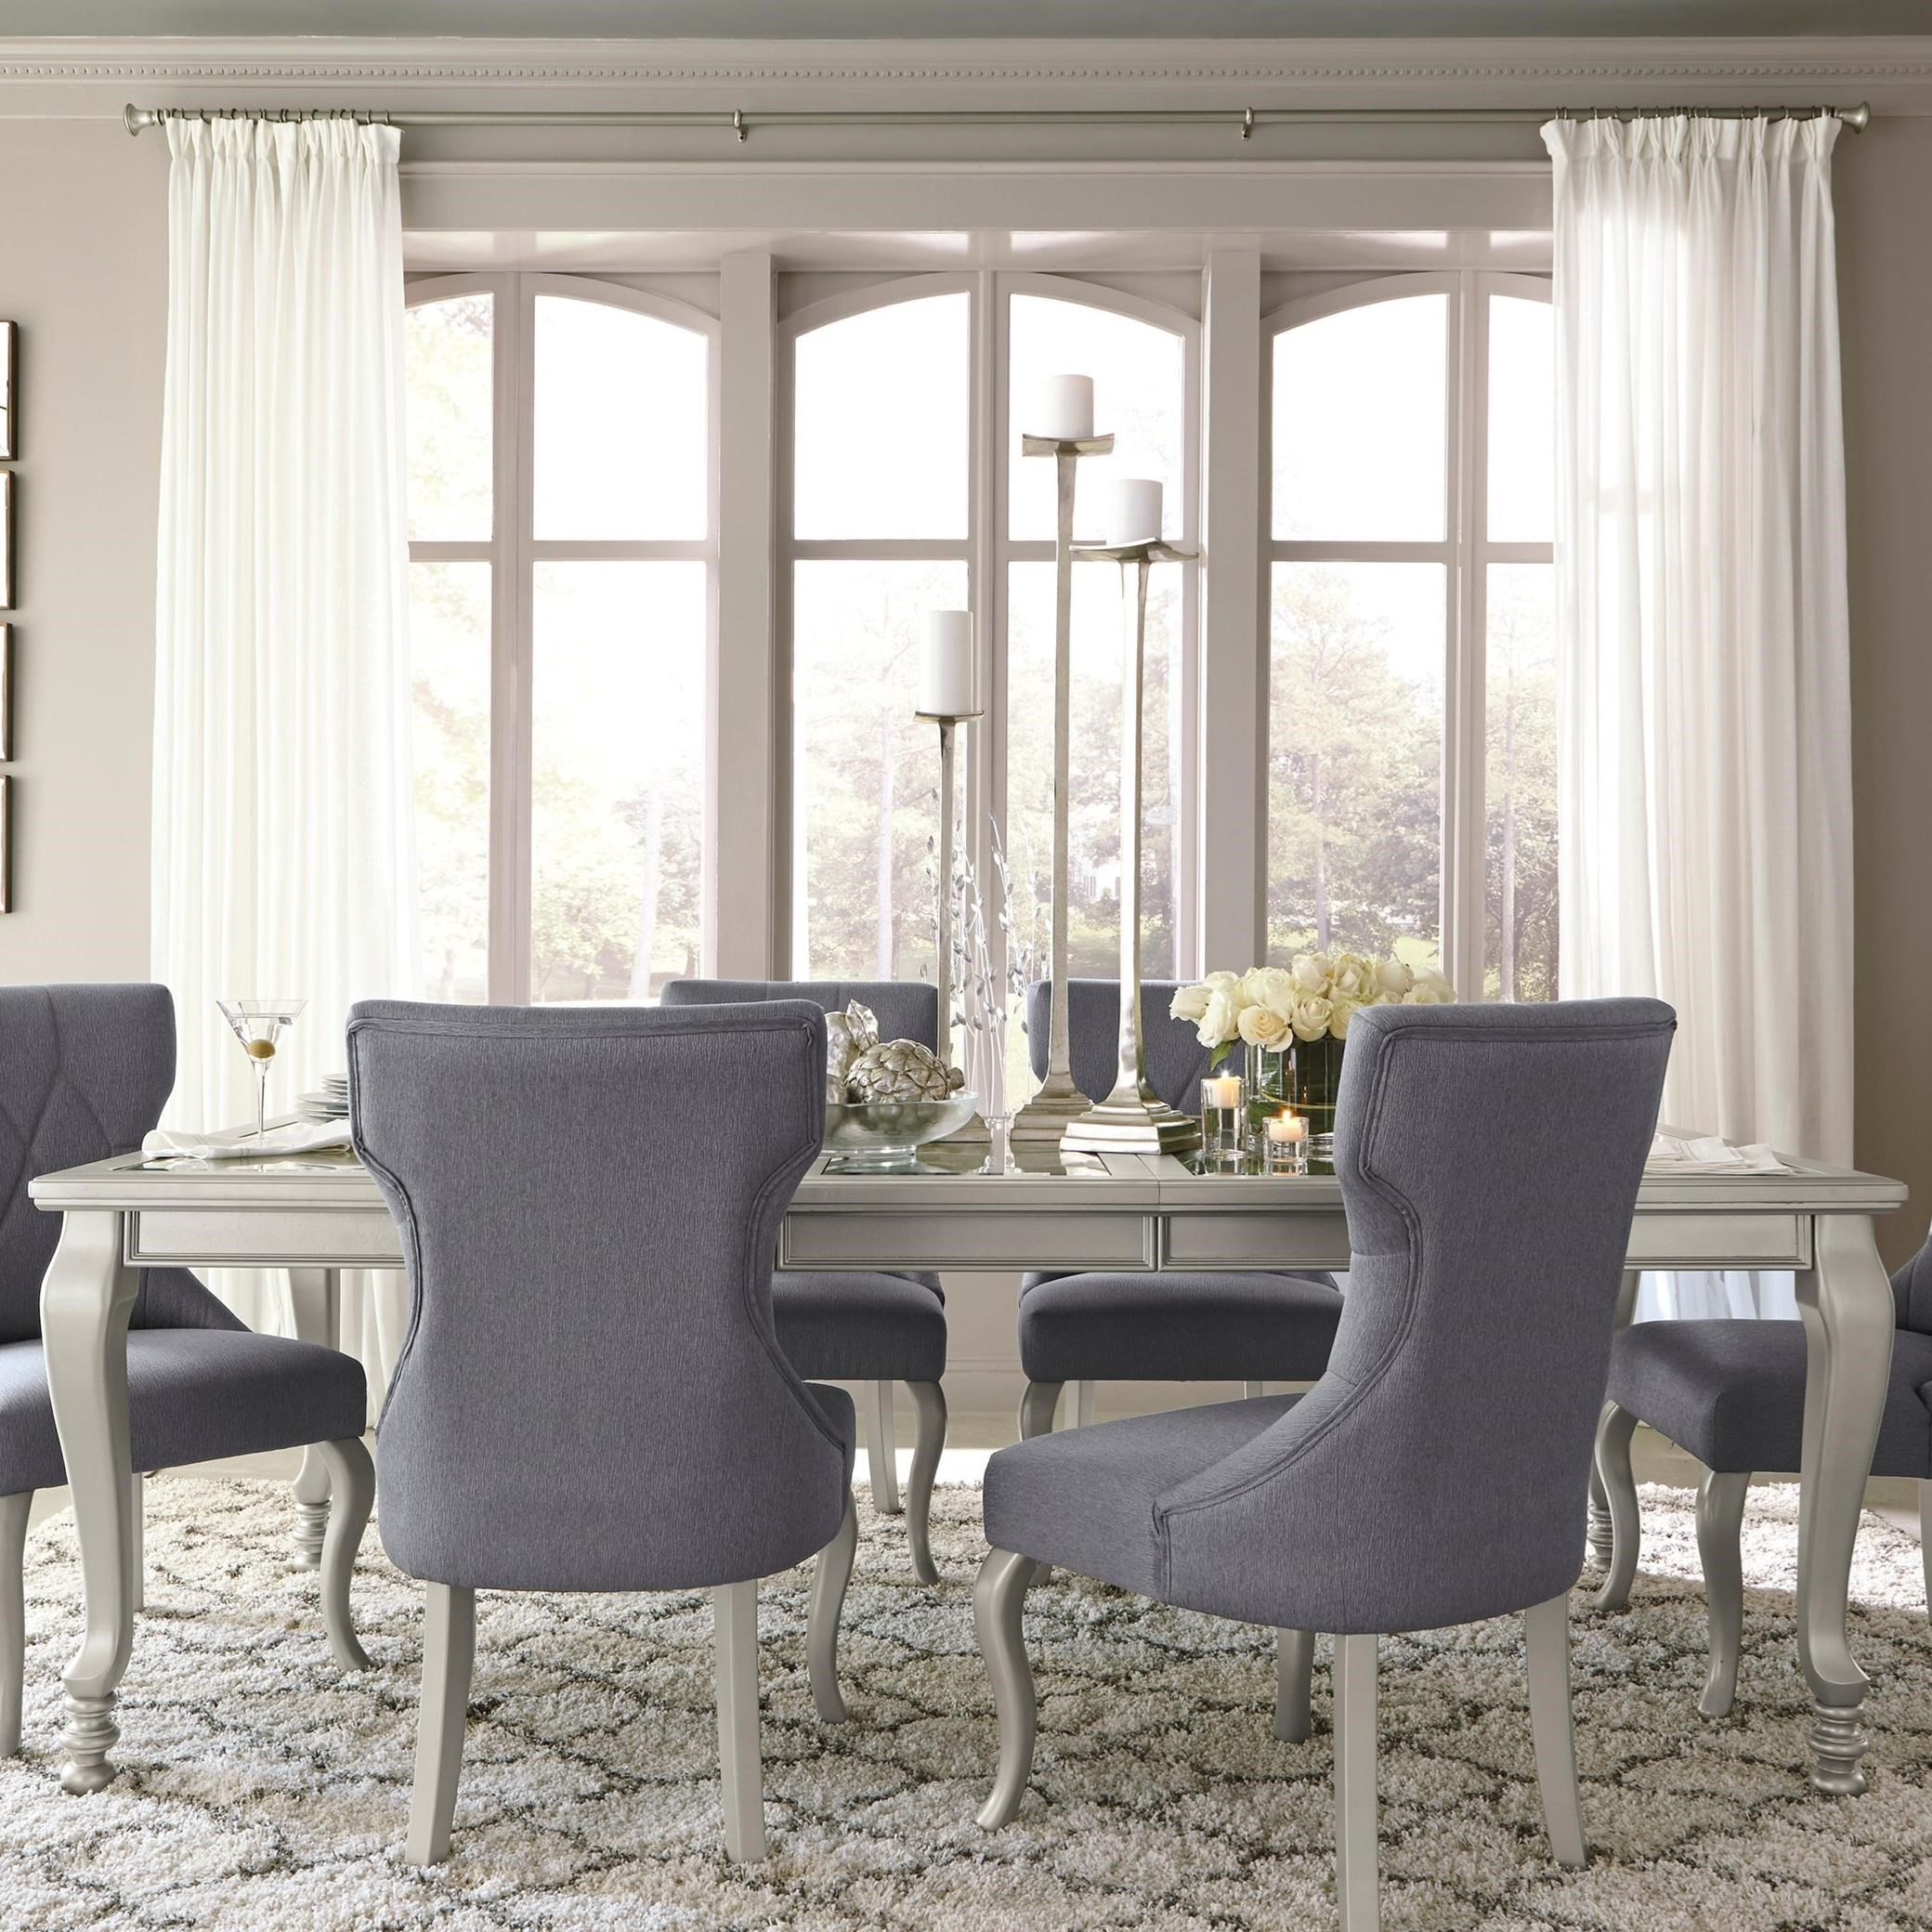 5 Piece Dining Room Sets Amazon Com: 5-Piece Rectangular Dining Room Extension Table Set By